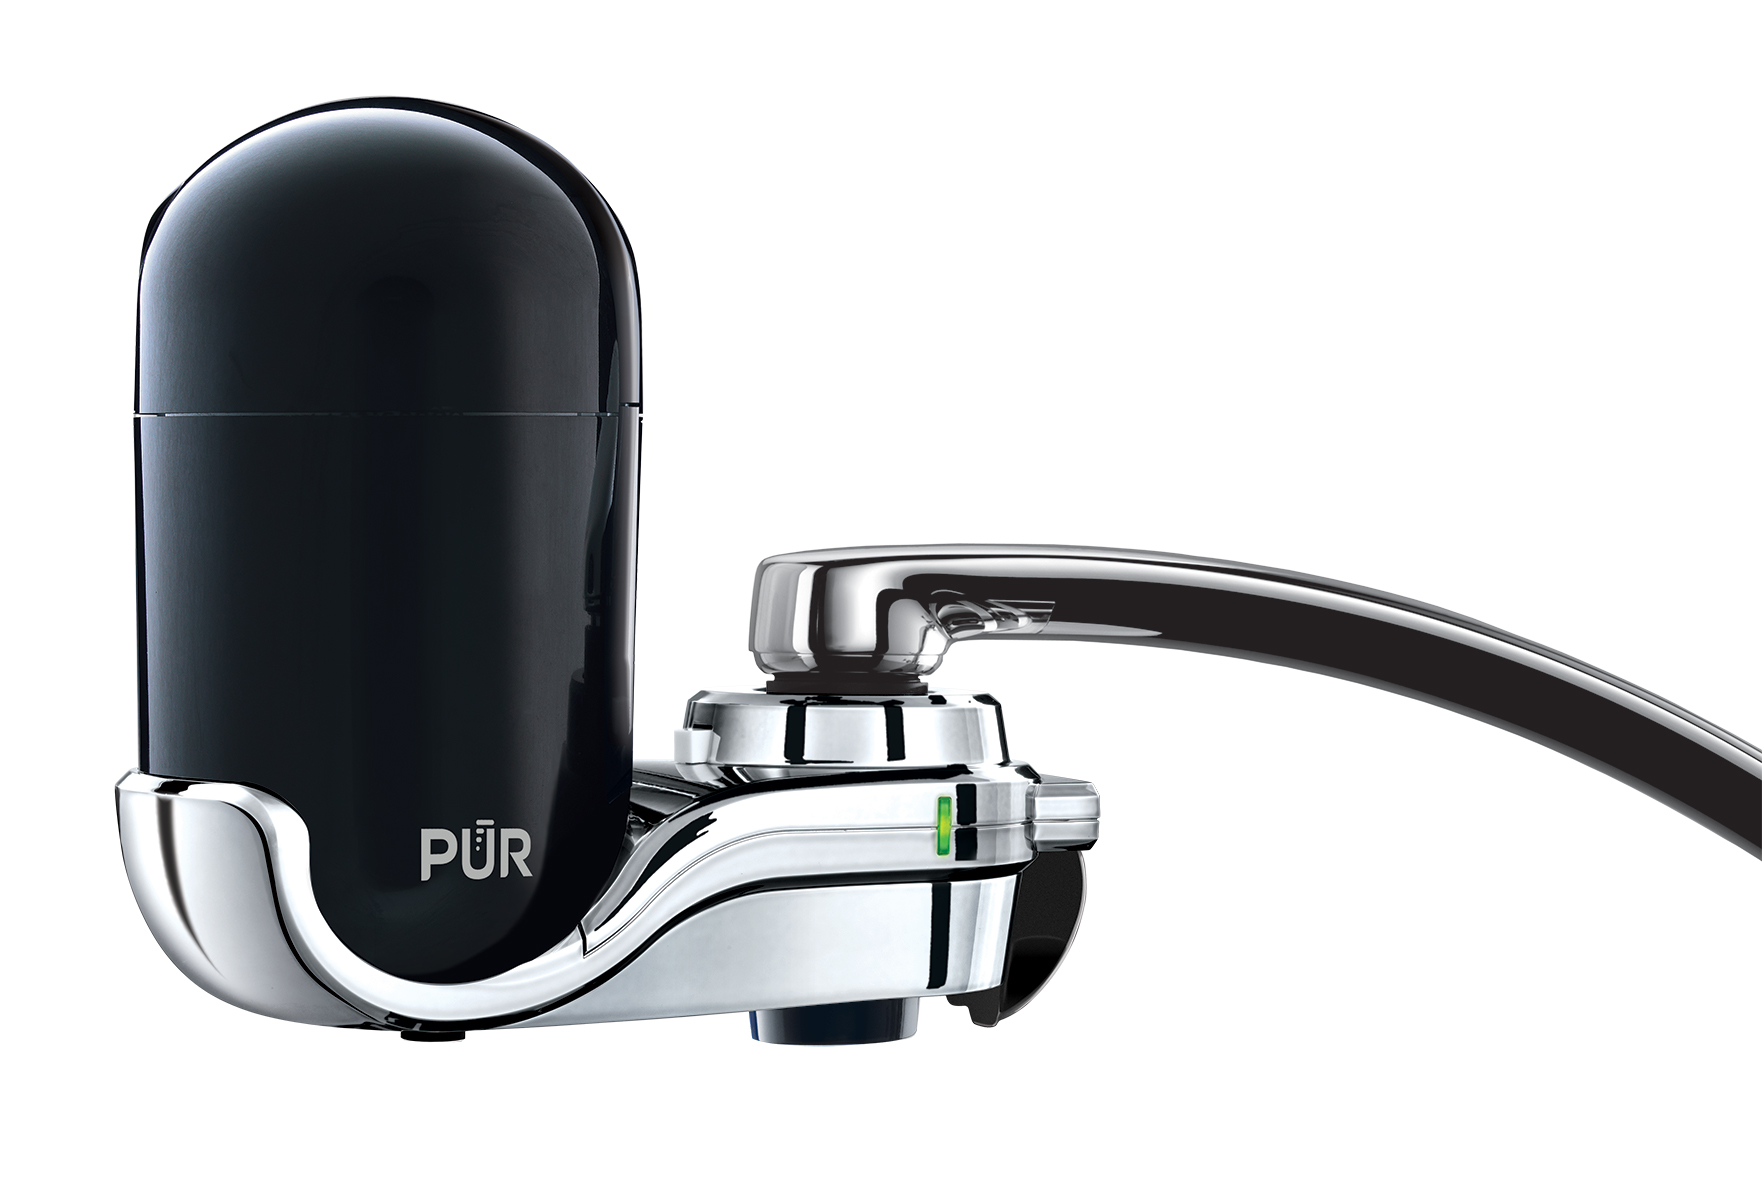 PUR Faucet Water Filter, FM-3500B, Black and Chrome by Kaz Usa, Inc.